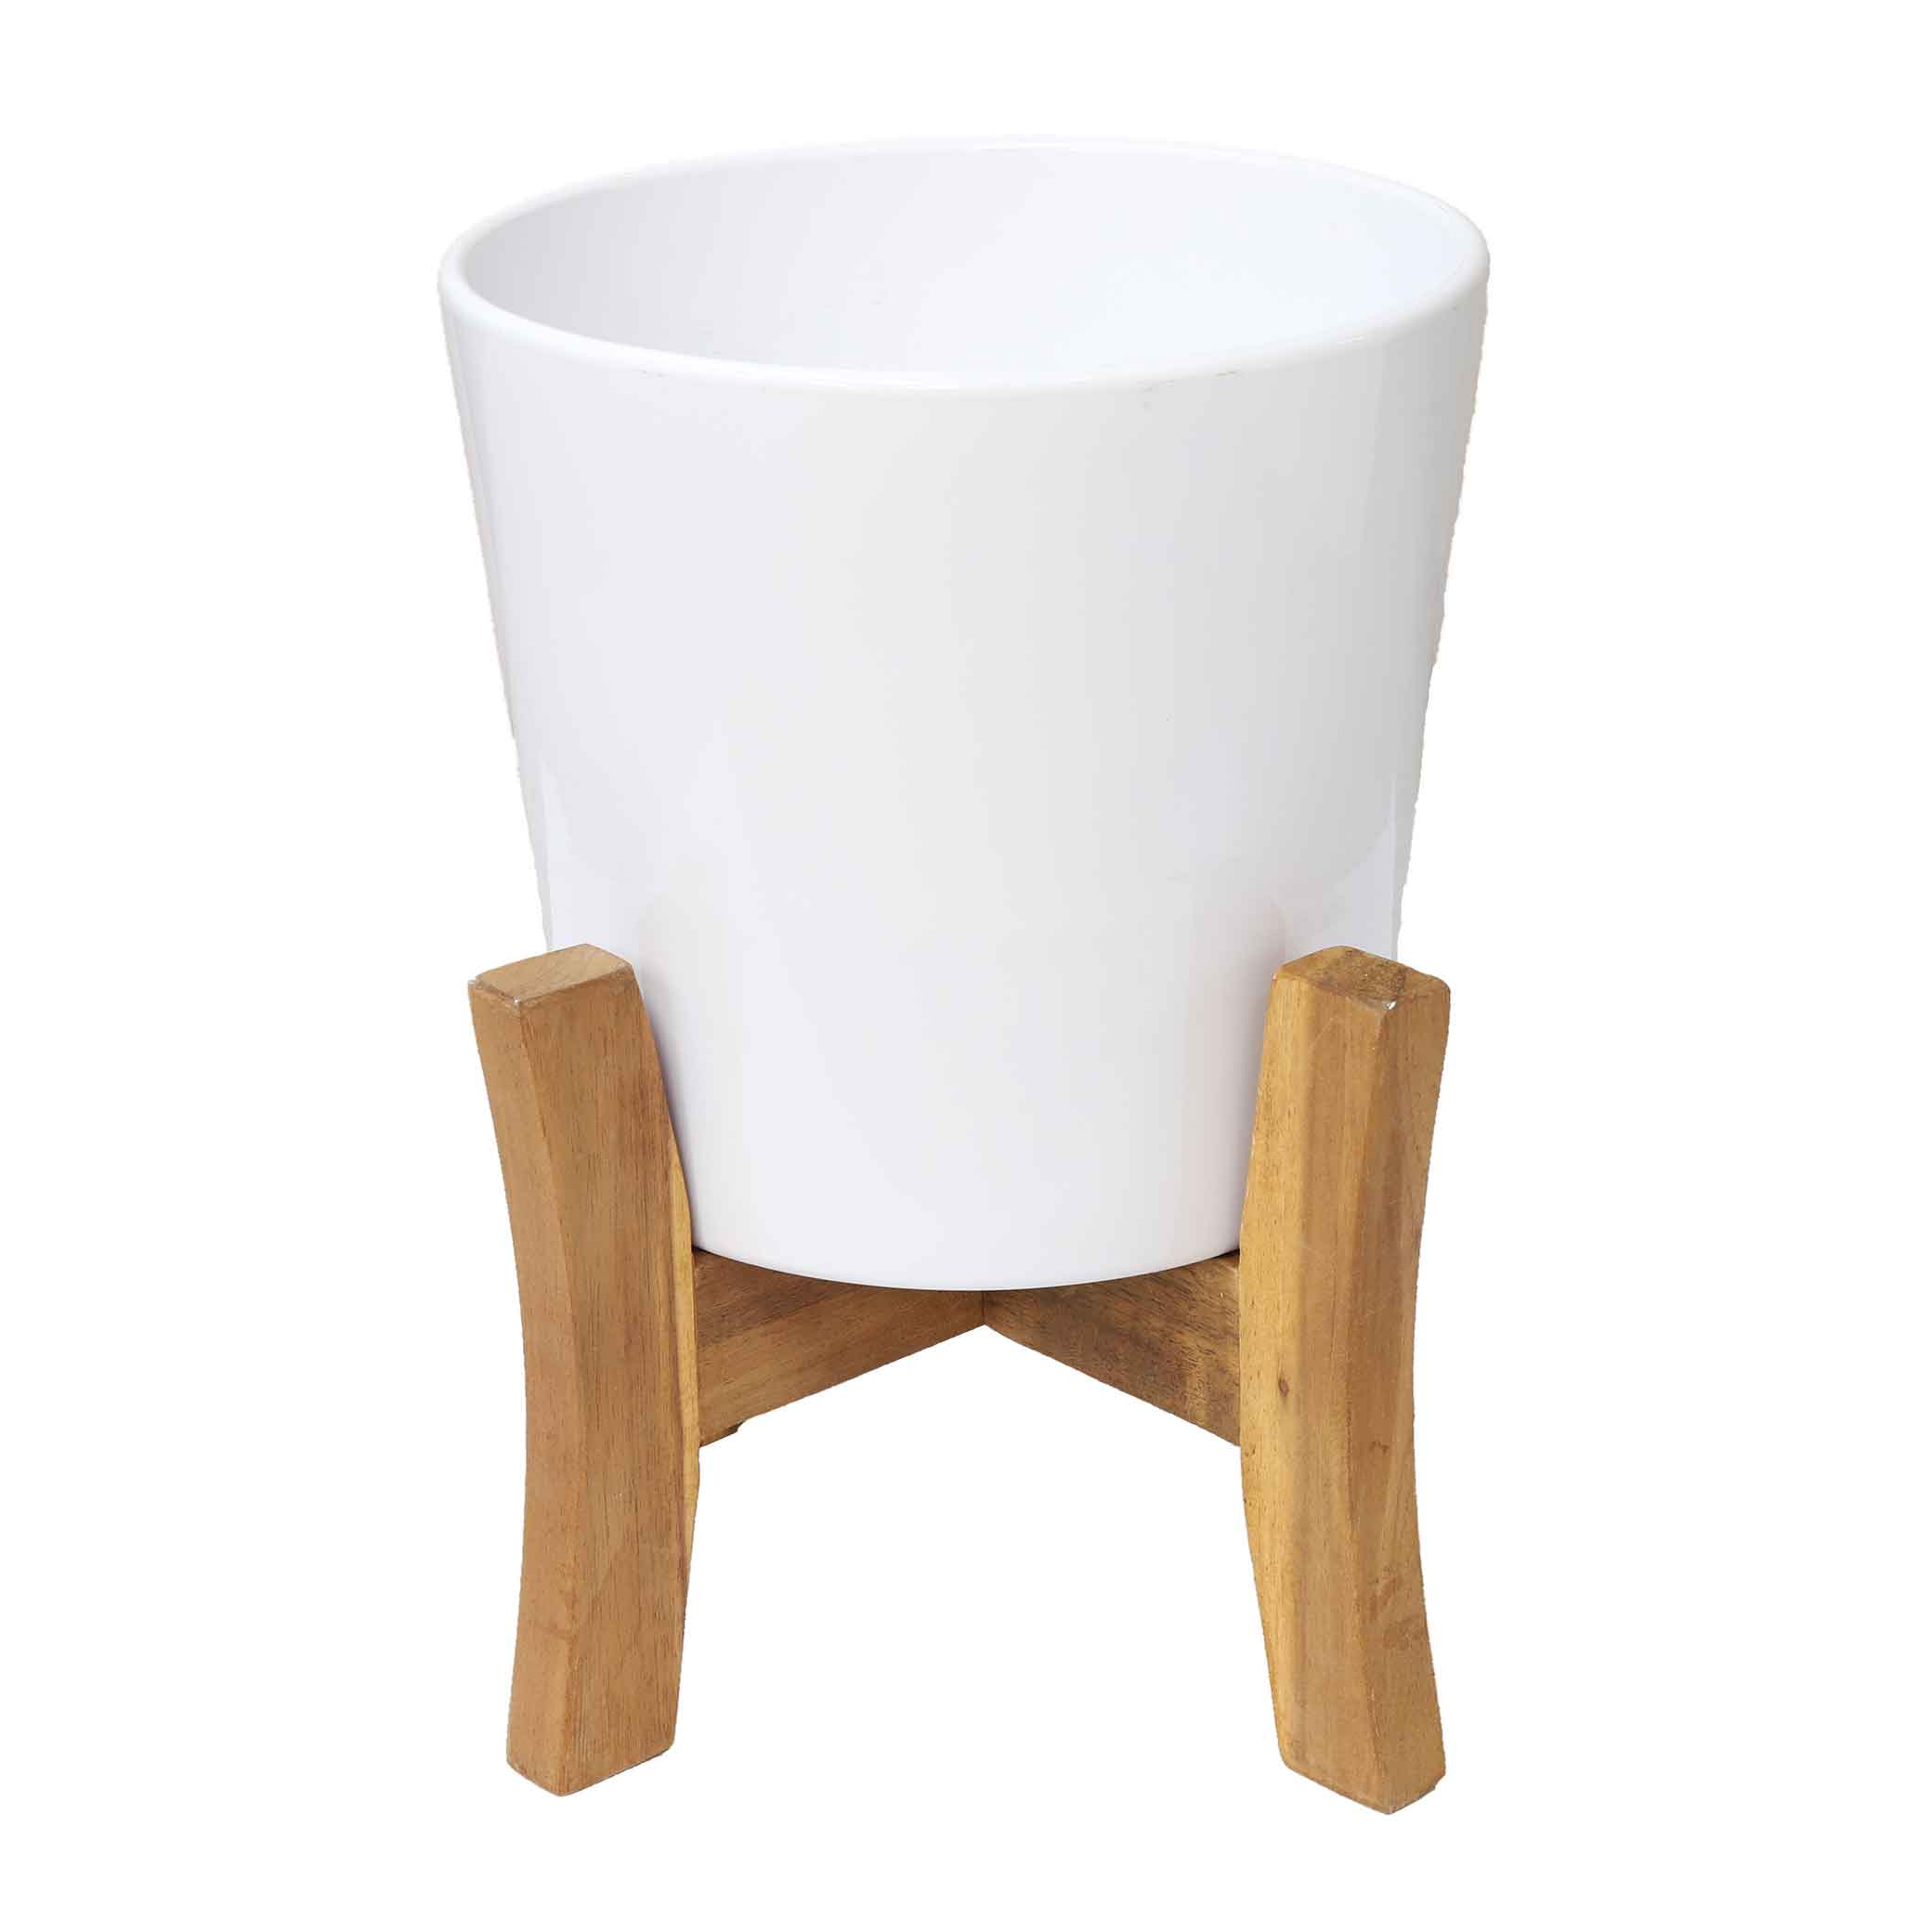 JAYDA PLANTER WITH STAND 21CM WHITE